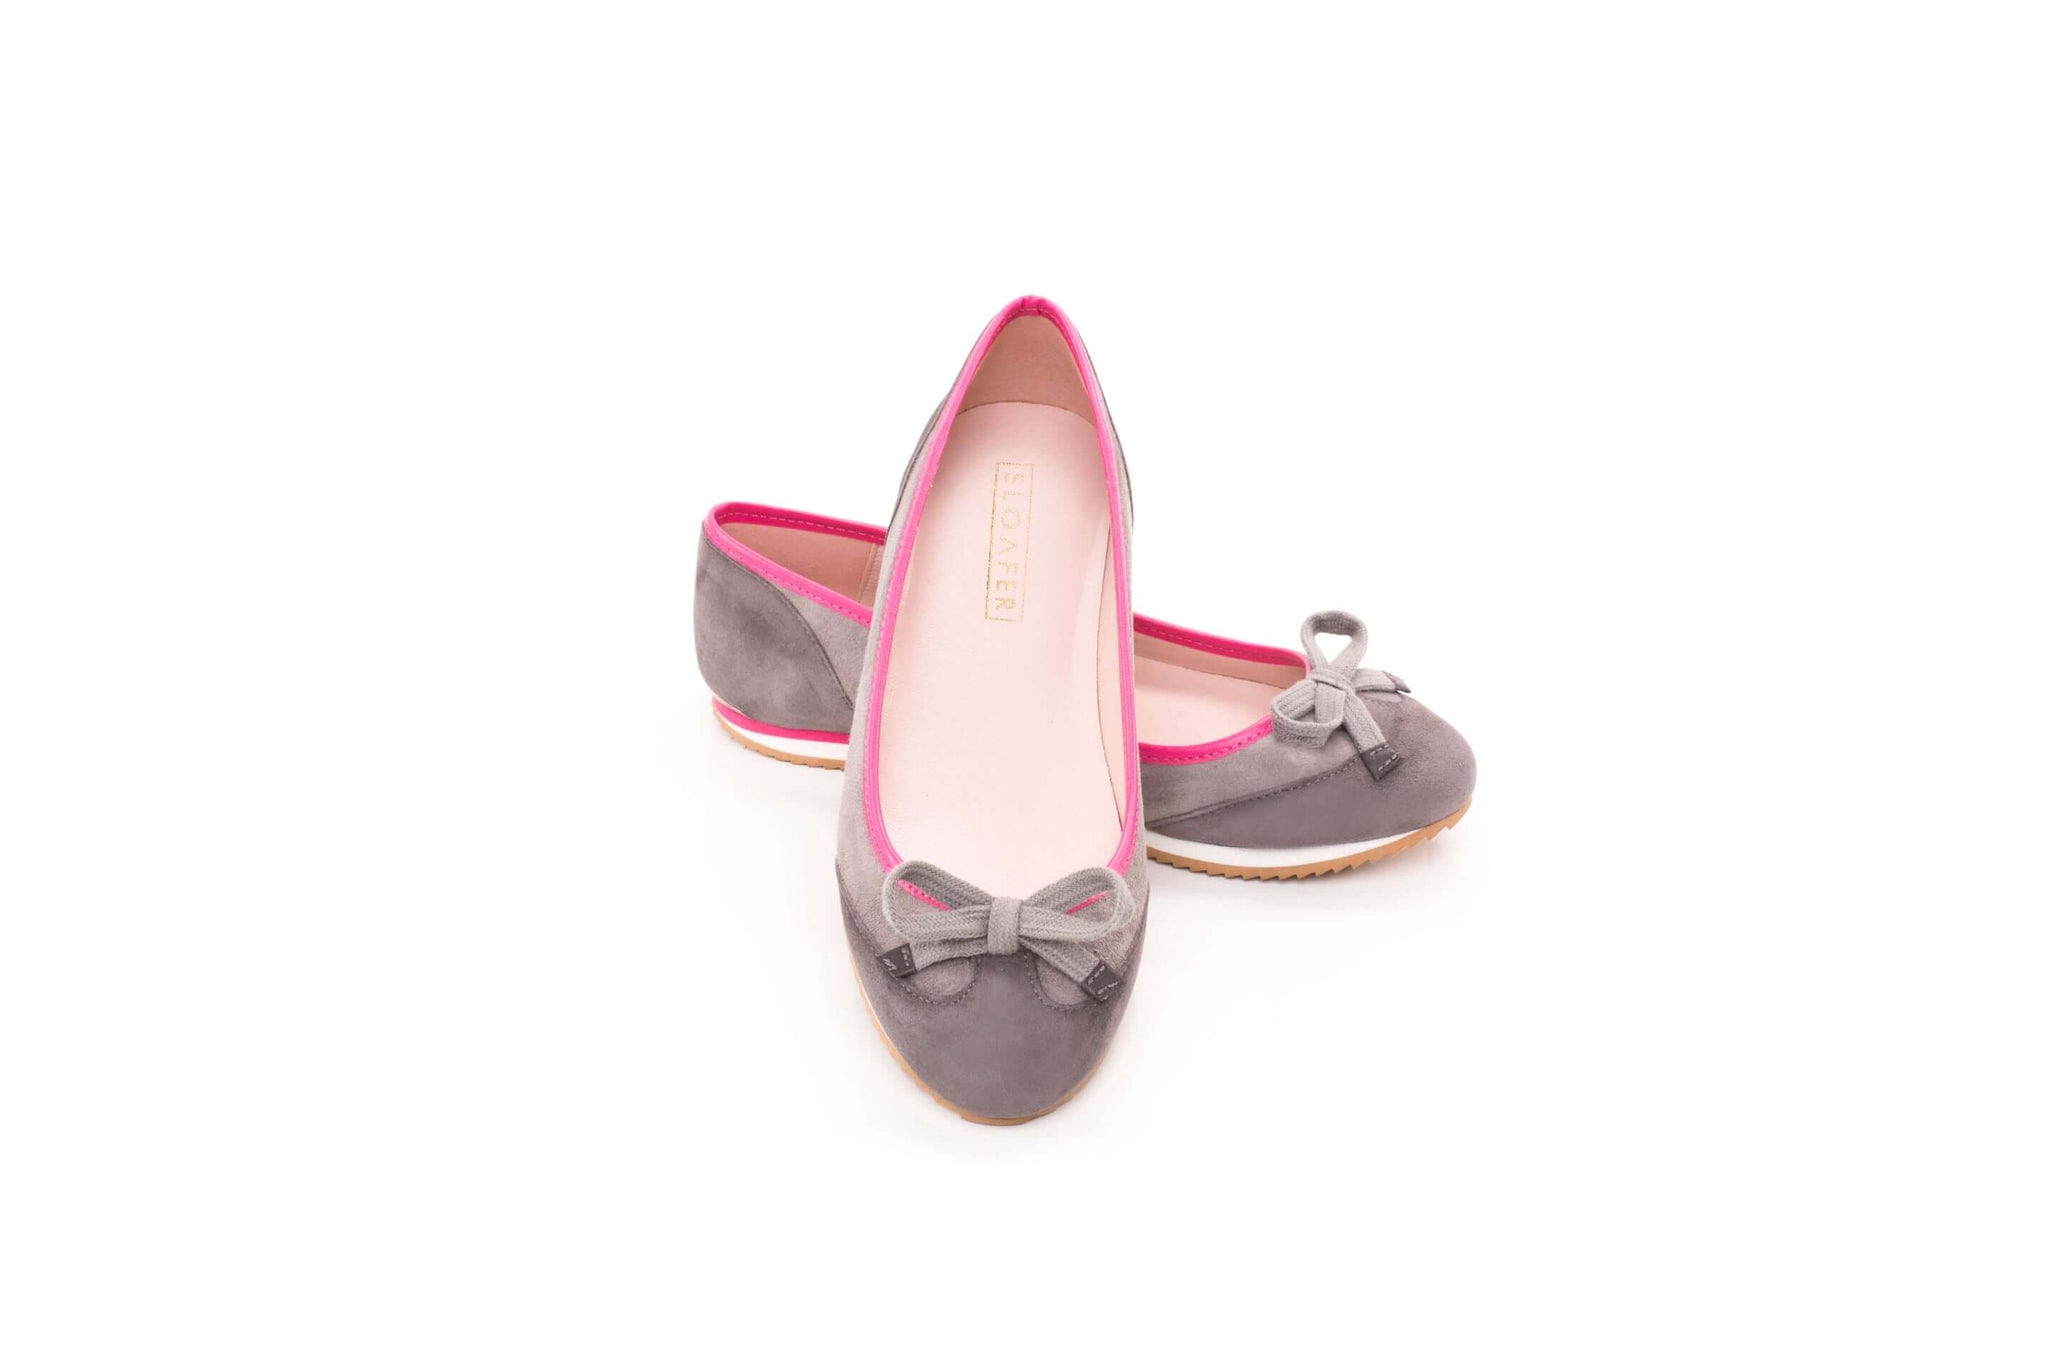 Grey and pink sneakerpump by Sloafer - the elegance and simplicity of a ballet pump, the comfort and support of a sneaker.